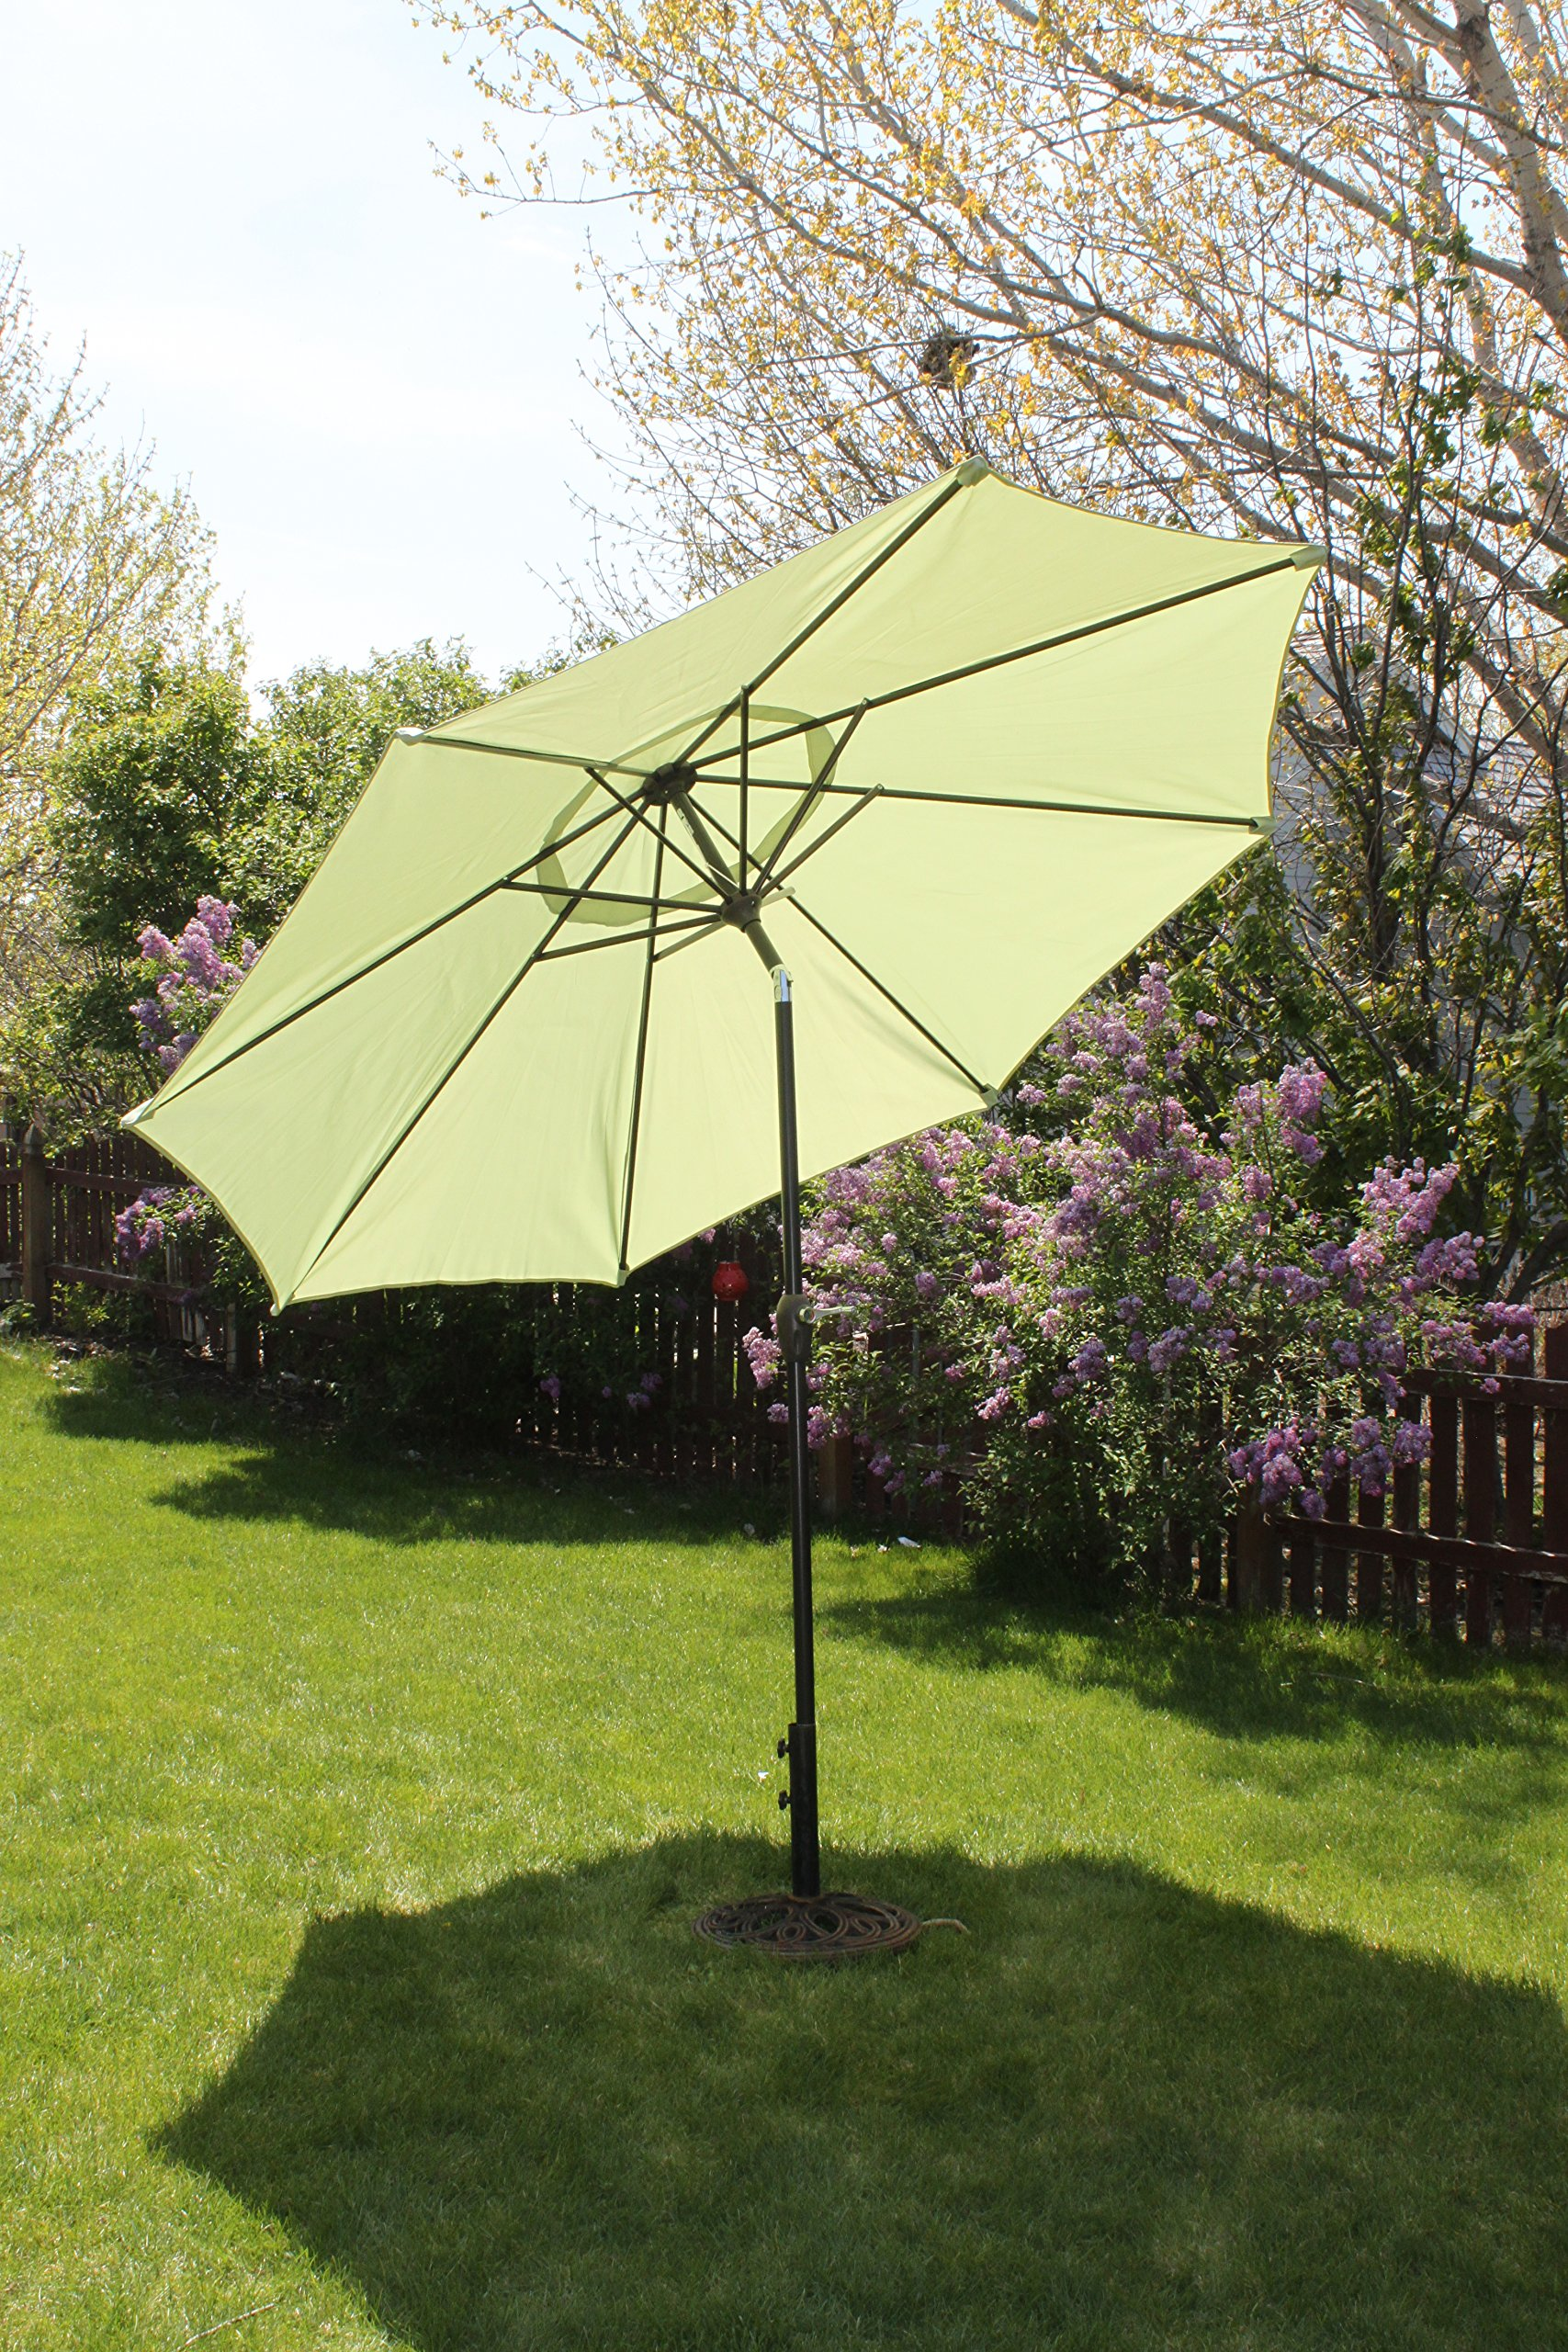 Pebble Lane Living 9' Market Patio Umbrella with Tilt and Crank - Light Lime Green - 9' Patio Market Umbrella This Patio Umbrella has a Vented Top for Wind This Patio Umbrella has a push Tilt mechanism - shades-parasols, patio-furniture, patio - A1k9PpkNh L -